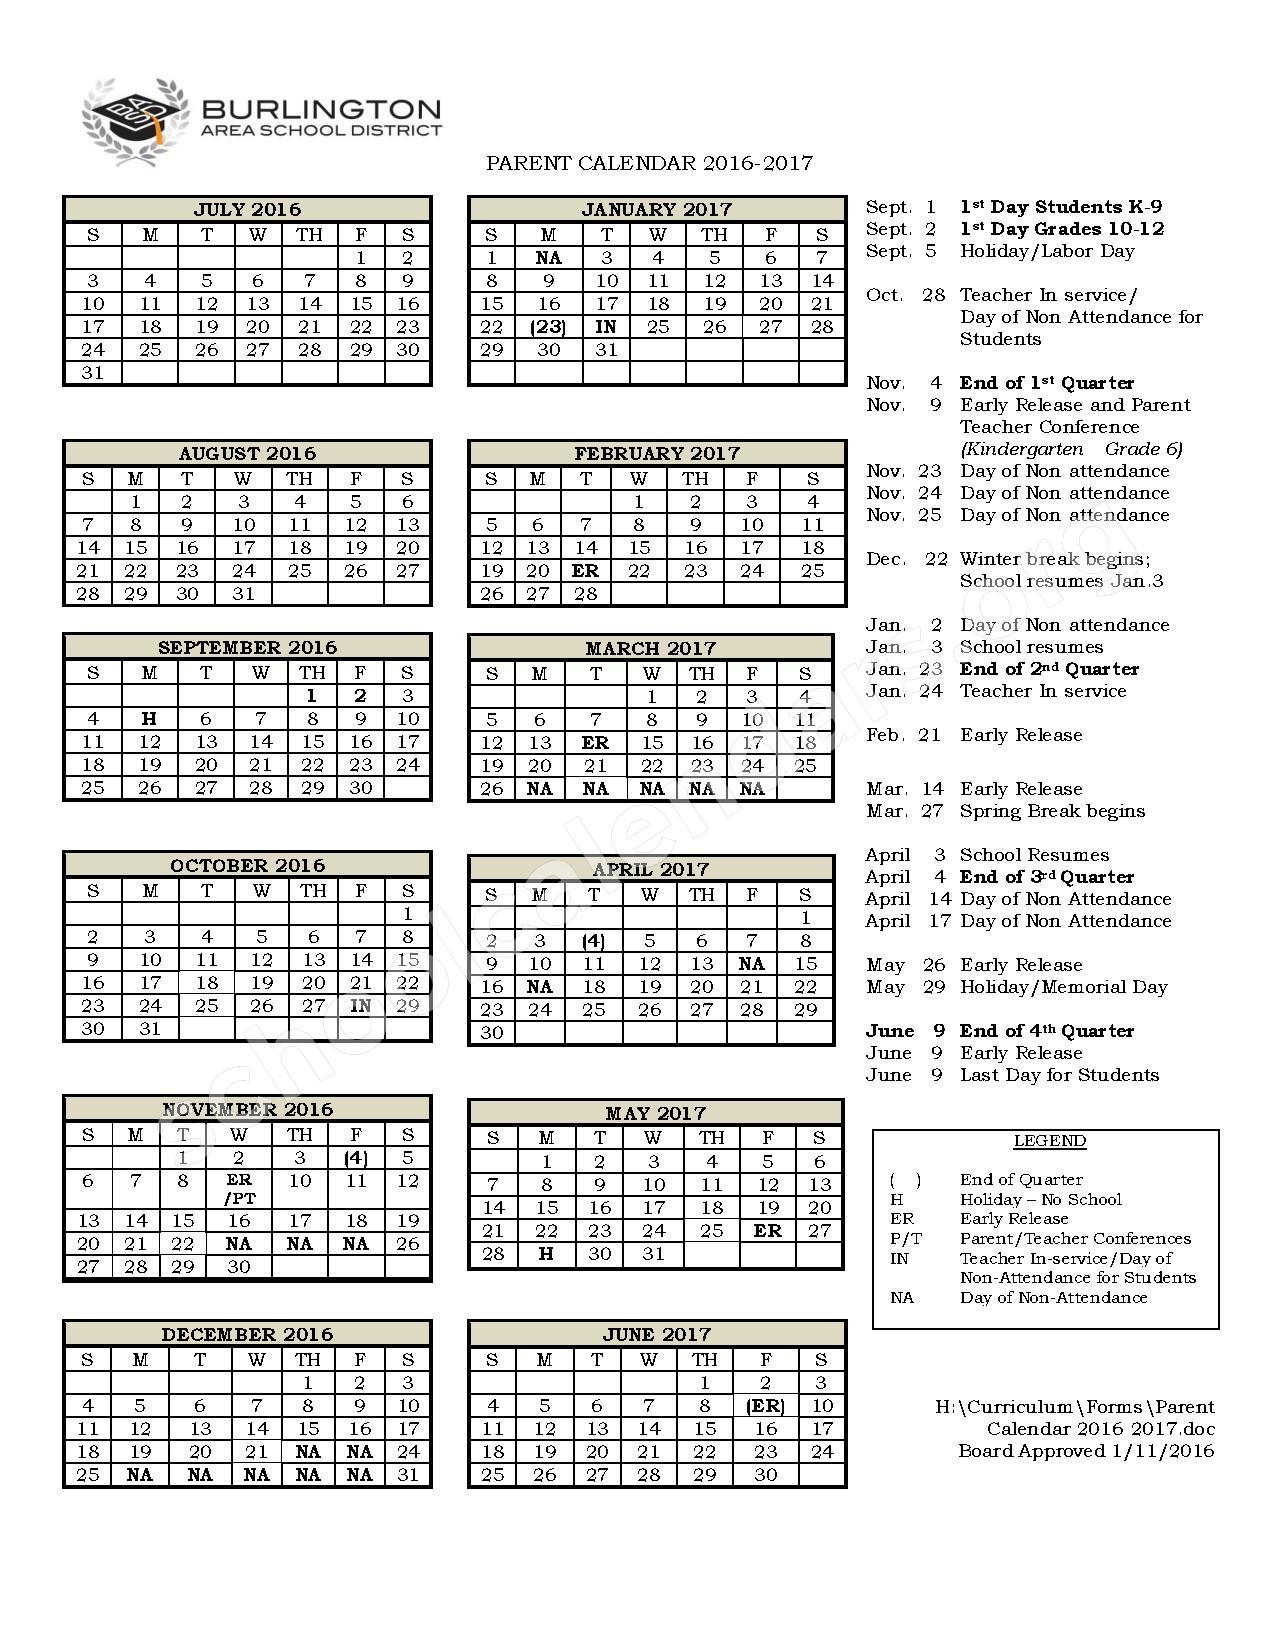 2016 - 2017 Parent Calendar – Burlington Area School District – page 1